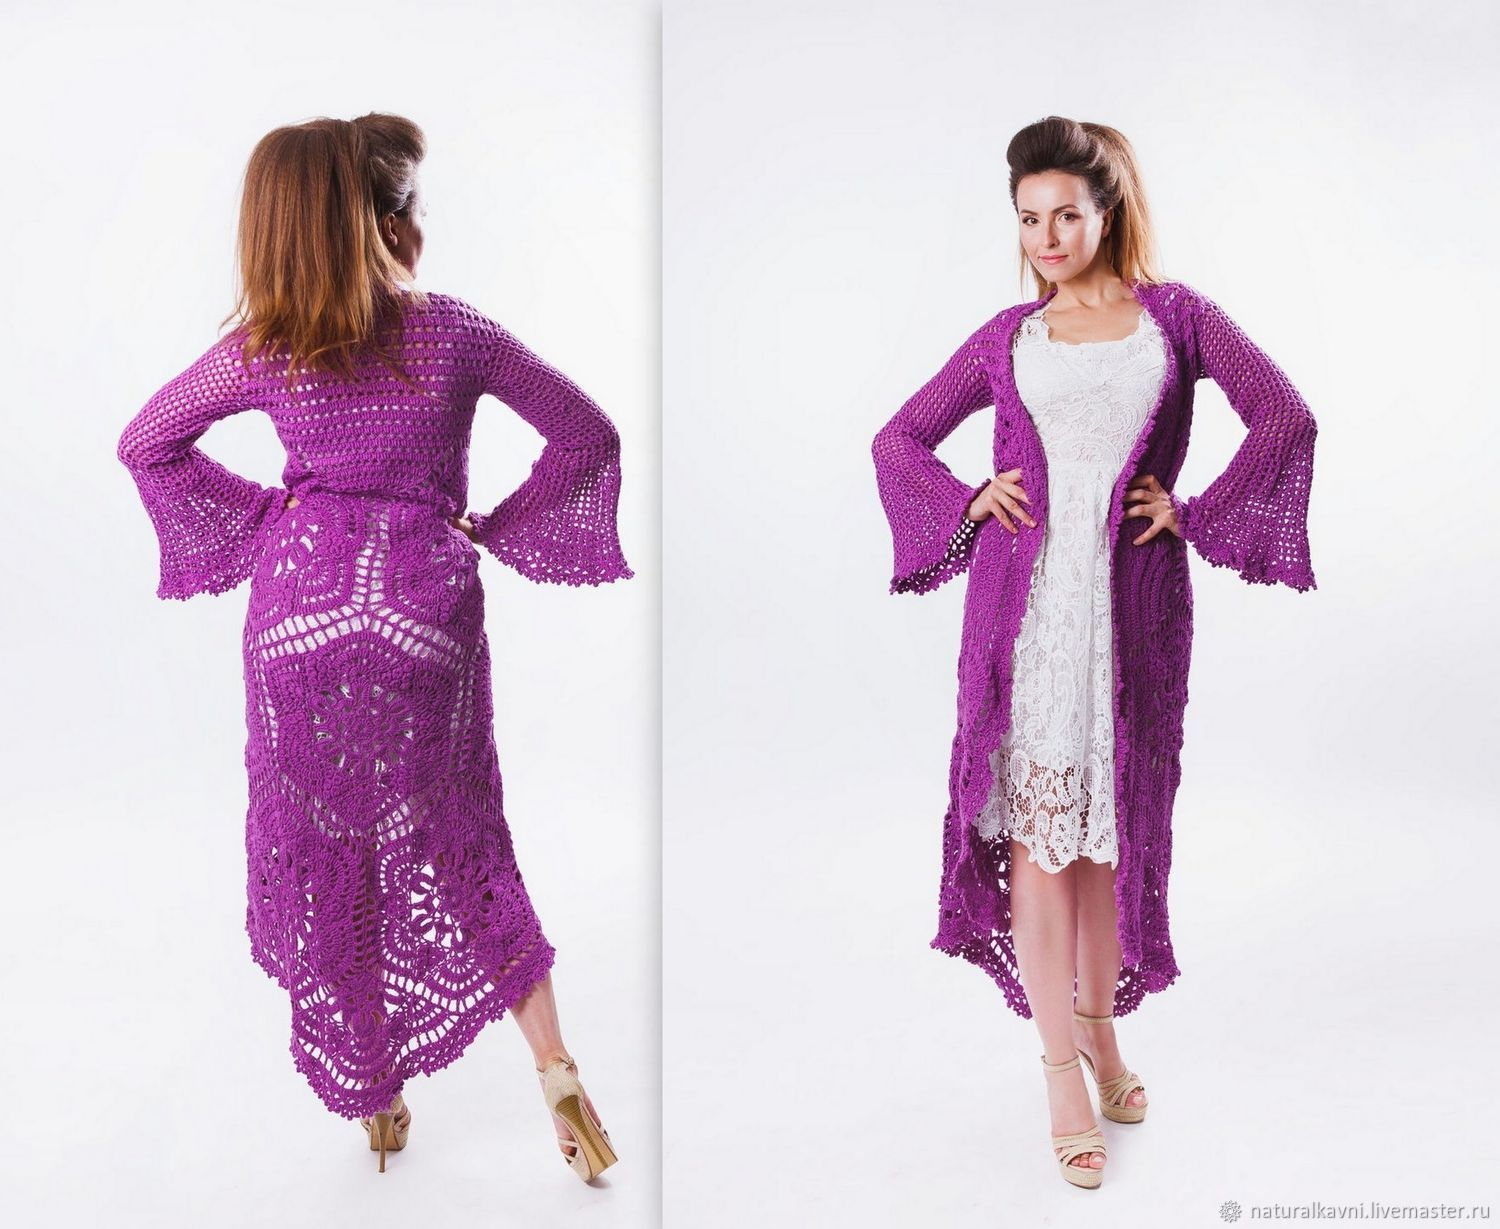 Handmade author's cardigan crocheted, Cardigans, Moscow,  Фото №1